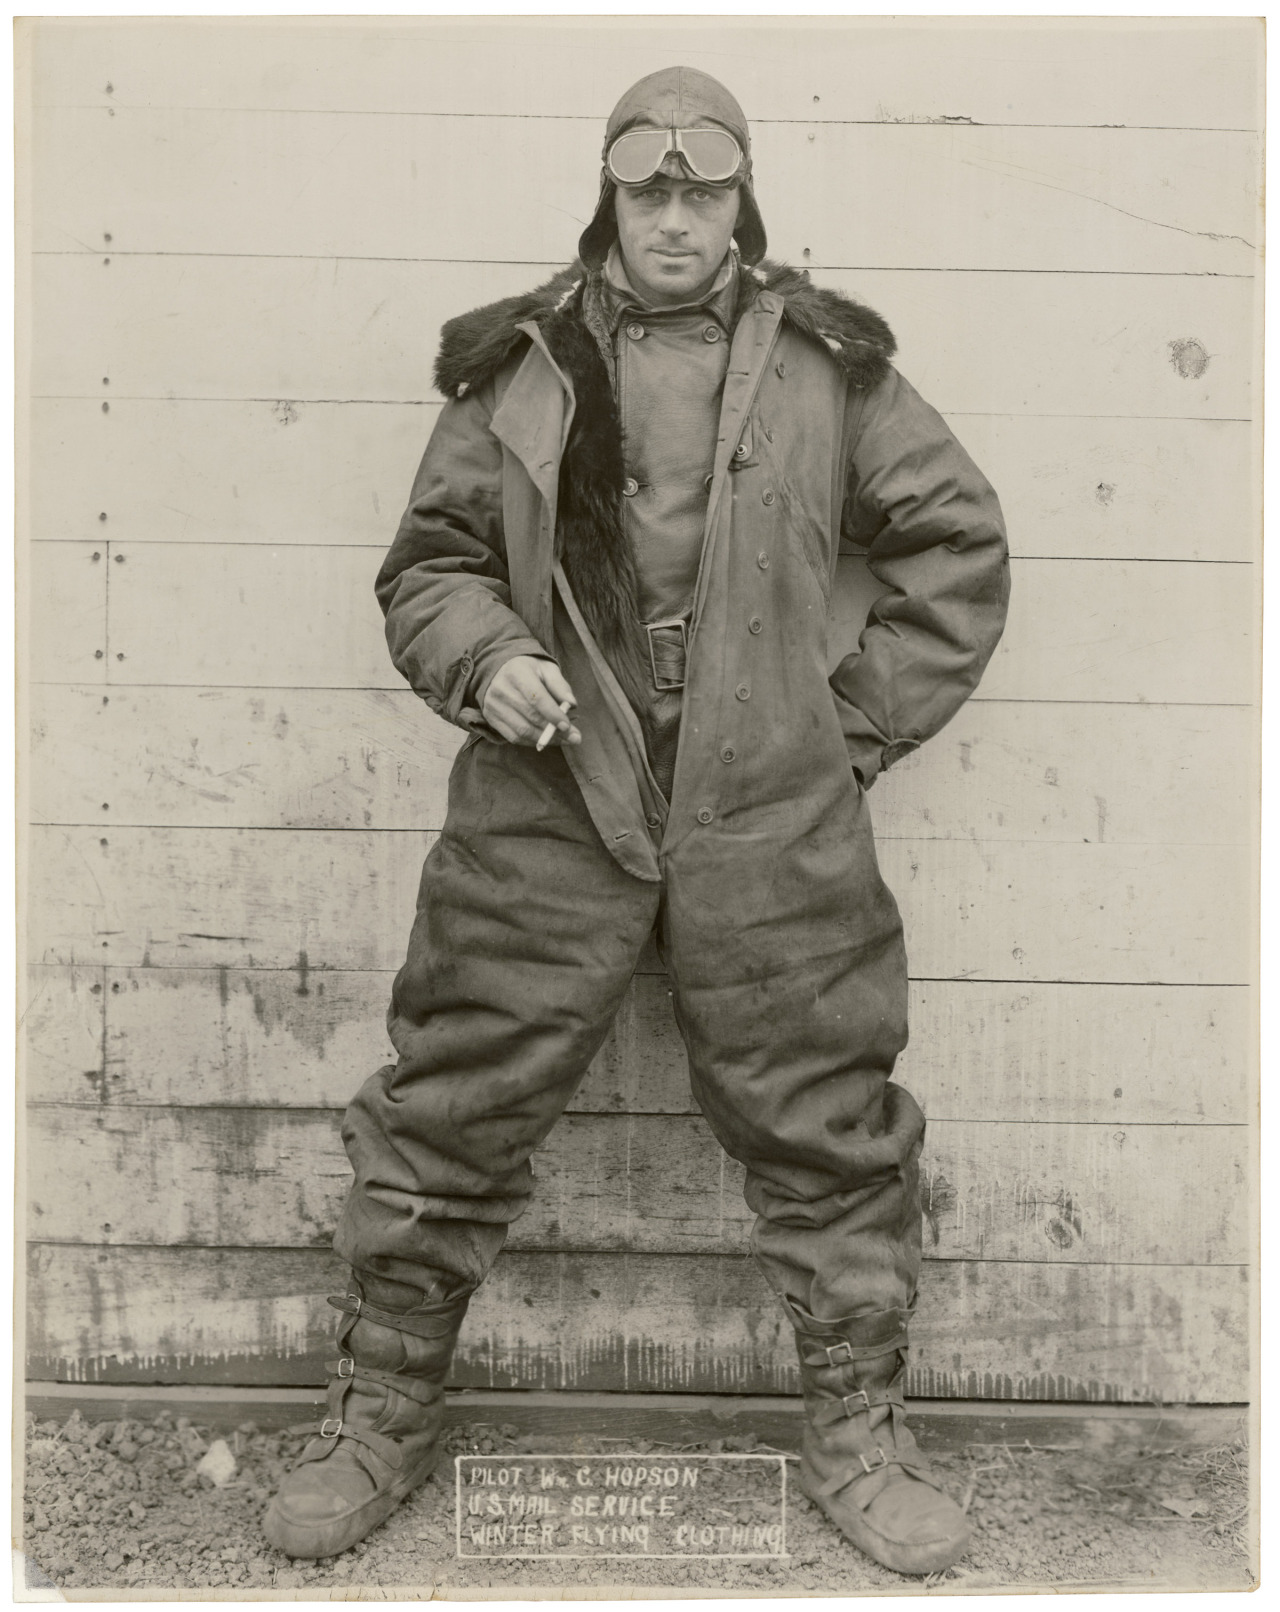 "Pilot William C. Hopson of the U.S. Mail Service in Winter Flying Clothing  Regularly scheduled airmail service first began in the United States on May 15, 1918.  ""Wild Bill"" Hopson remains one of the more colorful of the early airmail pilots.  A former cab driver who survived several close calls (once landing upside down in a cornfield), he perished when his plane crashed during a storm in 1928.  Check out his ""Pilot Story"" at the Smithsonian's National Postal Museum."